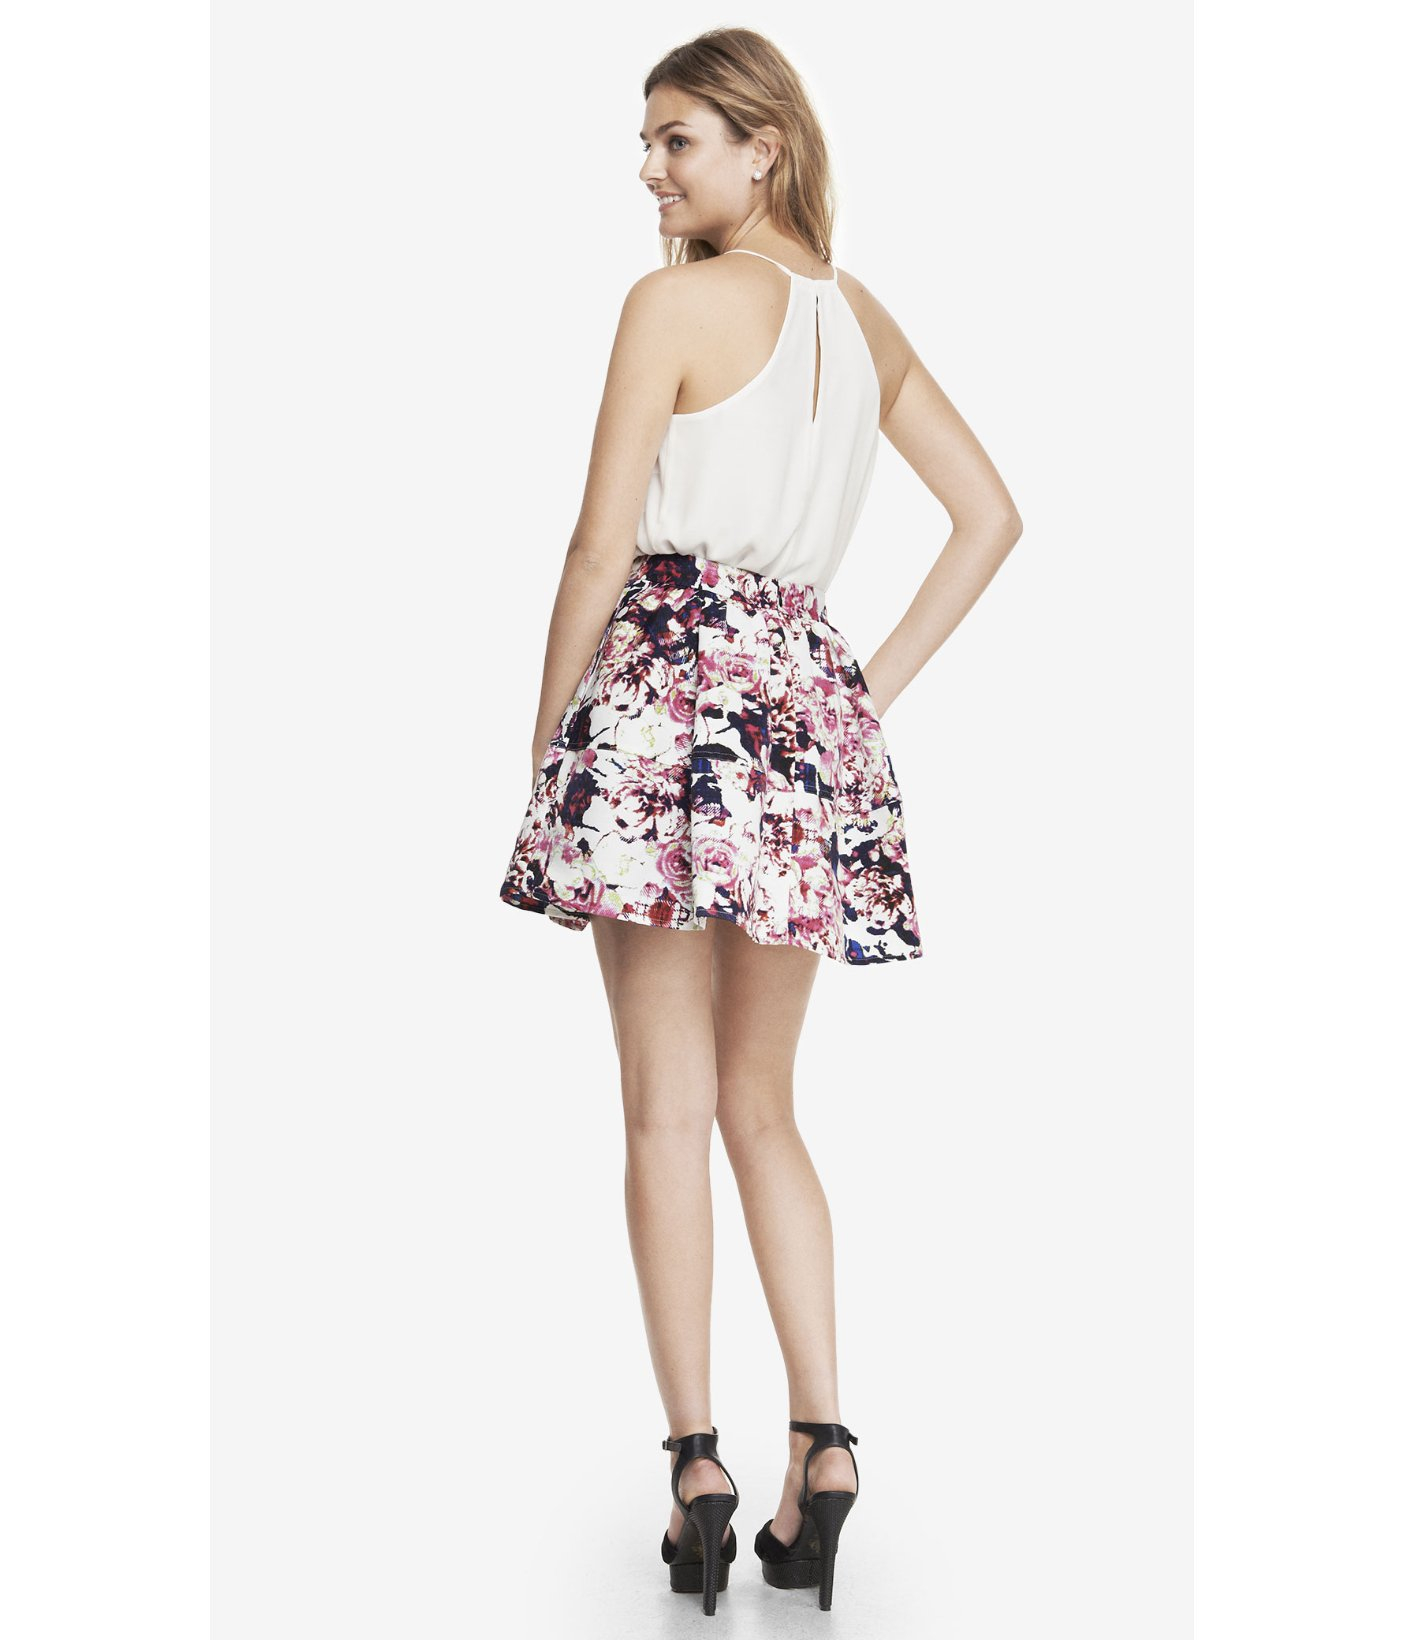 to wear - Waisted high floral skirt video